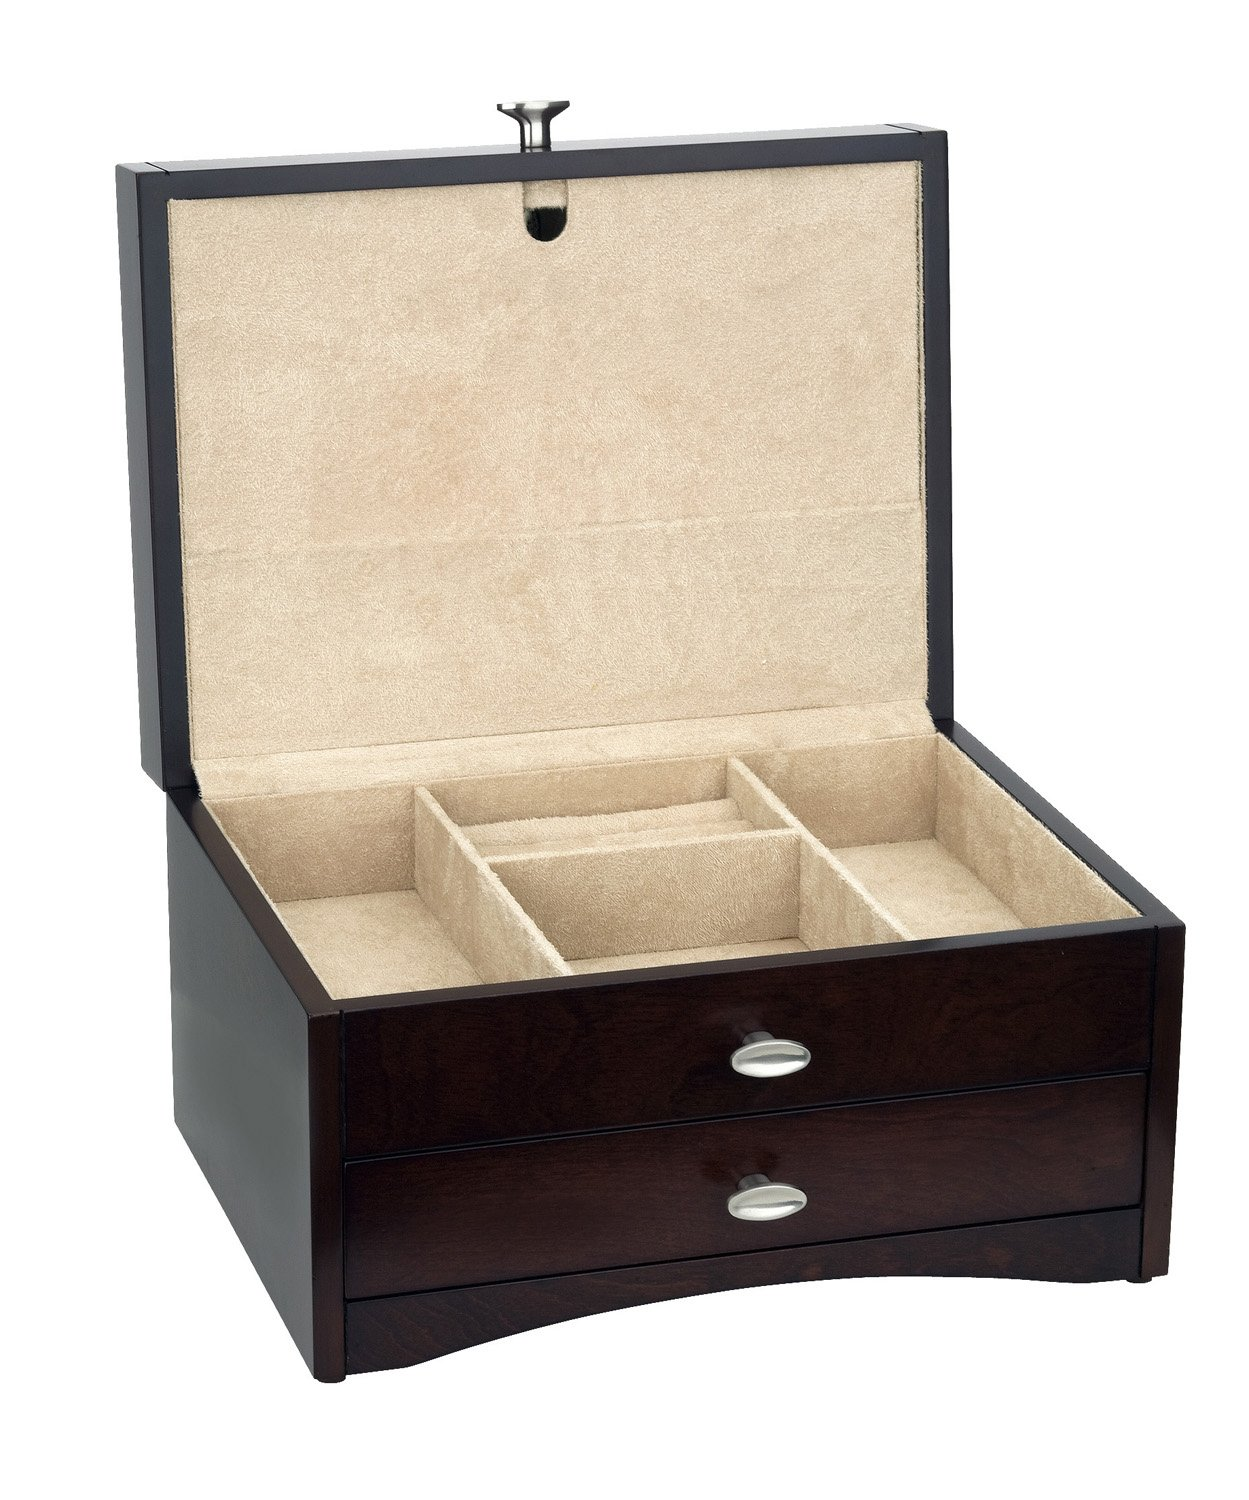 Reed & Barton Avery Jewelry Chest with Draw by Reed & Barton